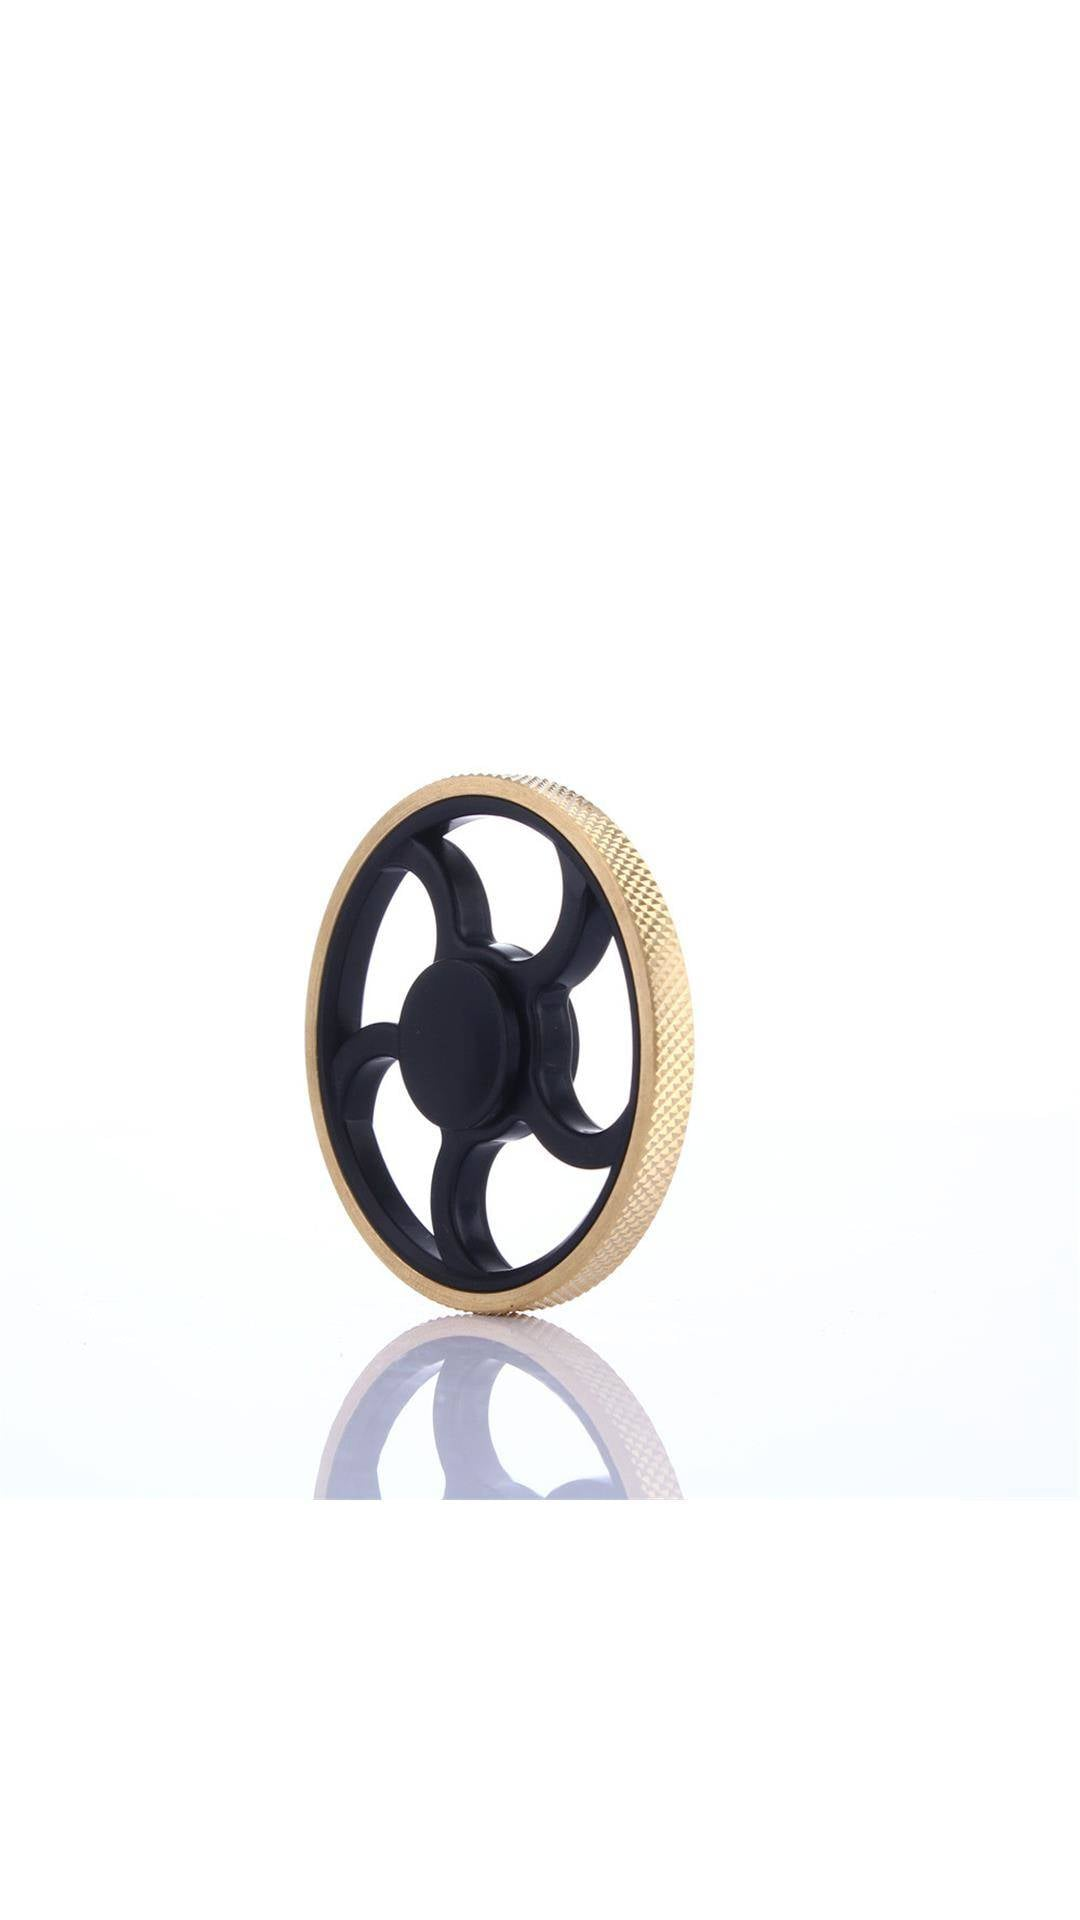 What are Fidget Spinners? How do to they work? Buy one today on Paytm for Rs.49 - Buy Round Fidget Hand Spinner Torqbar Brass Finger Toy EDC Focus Gyro Gift Paytm Mall Deal